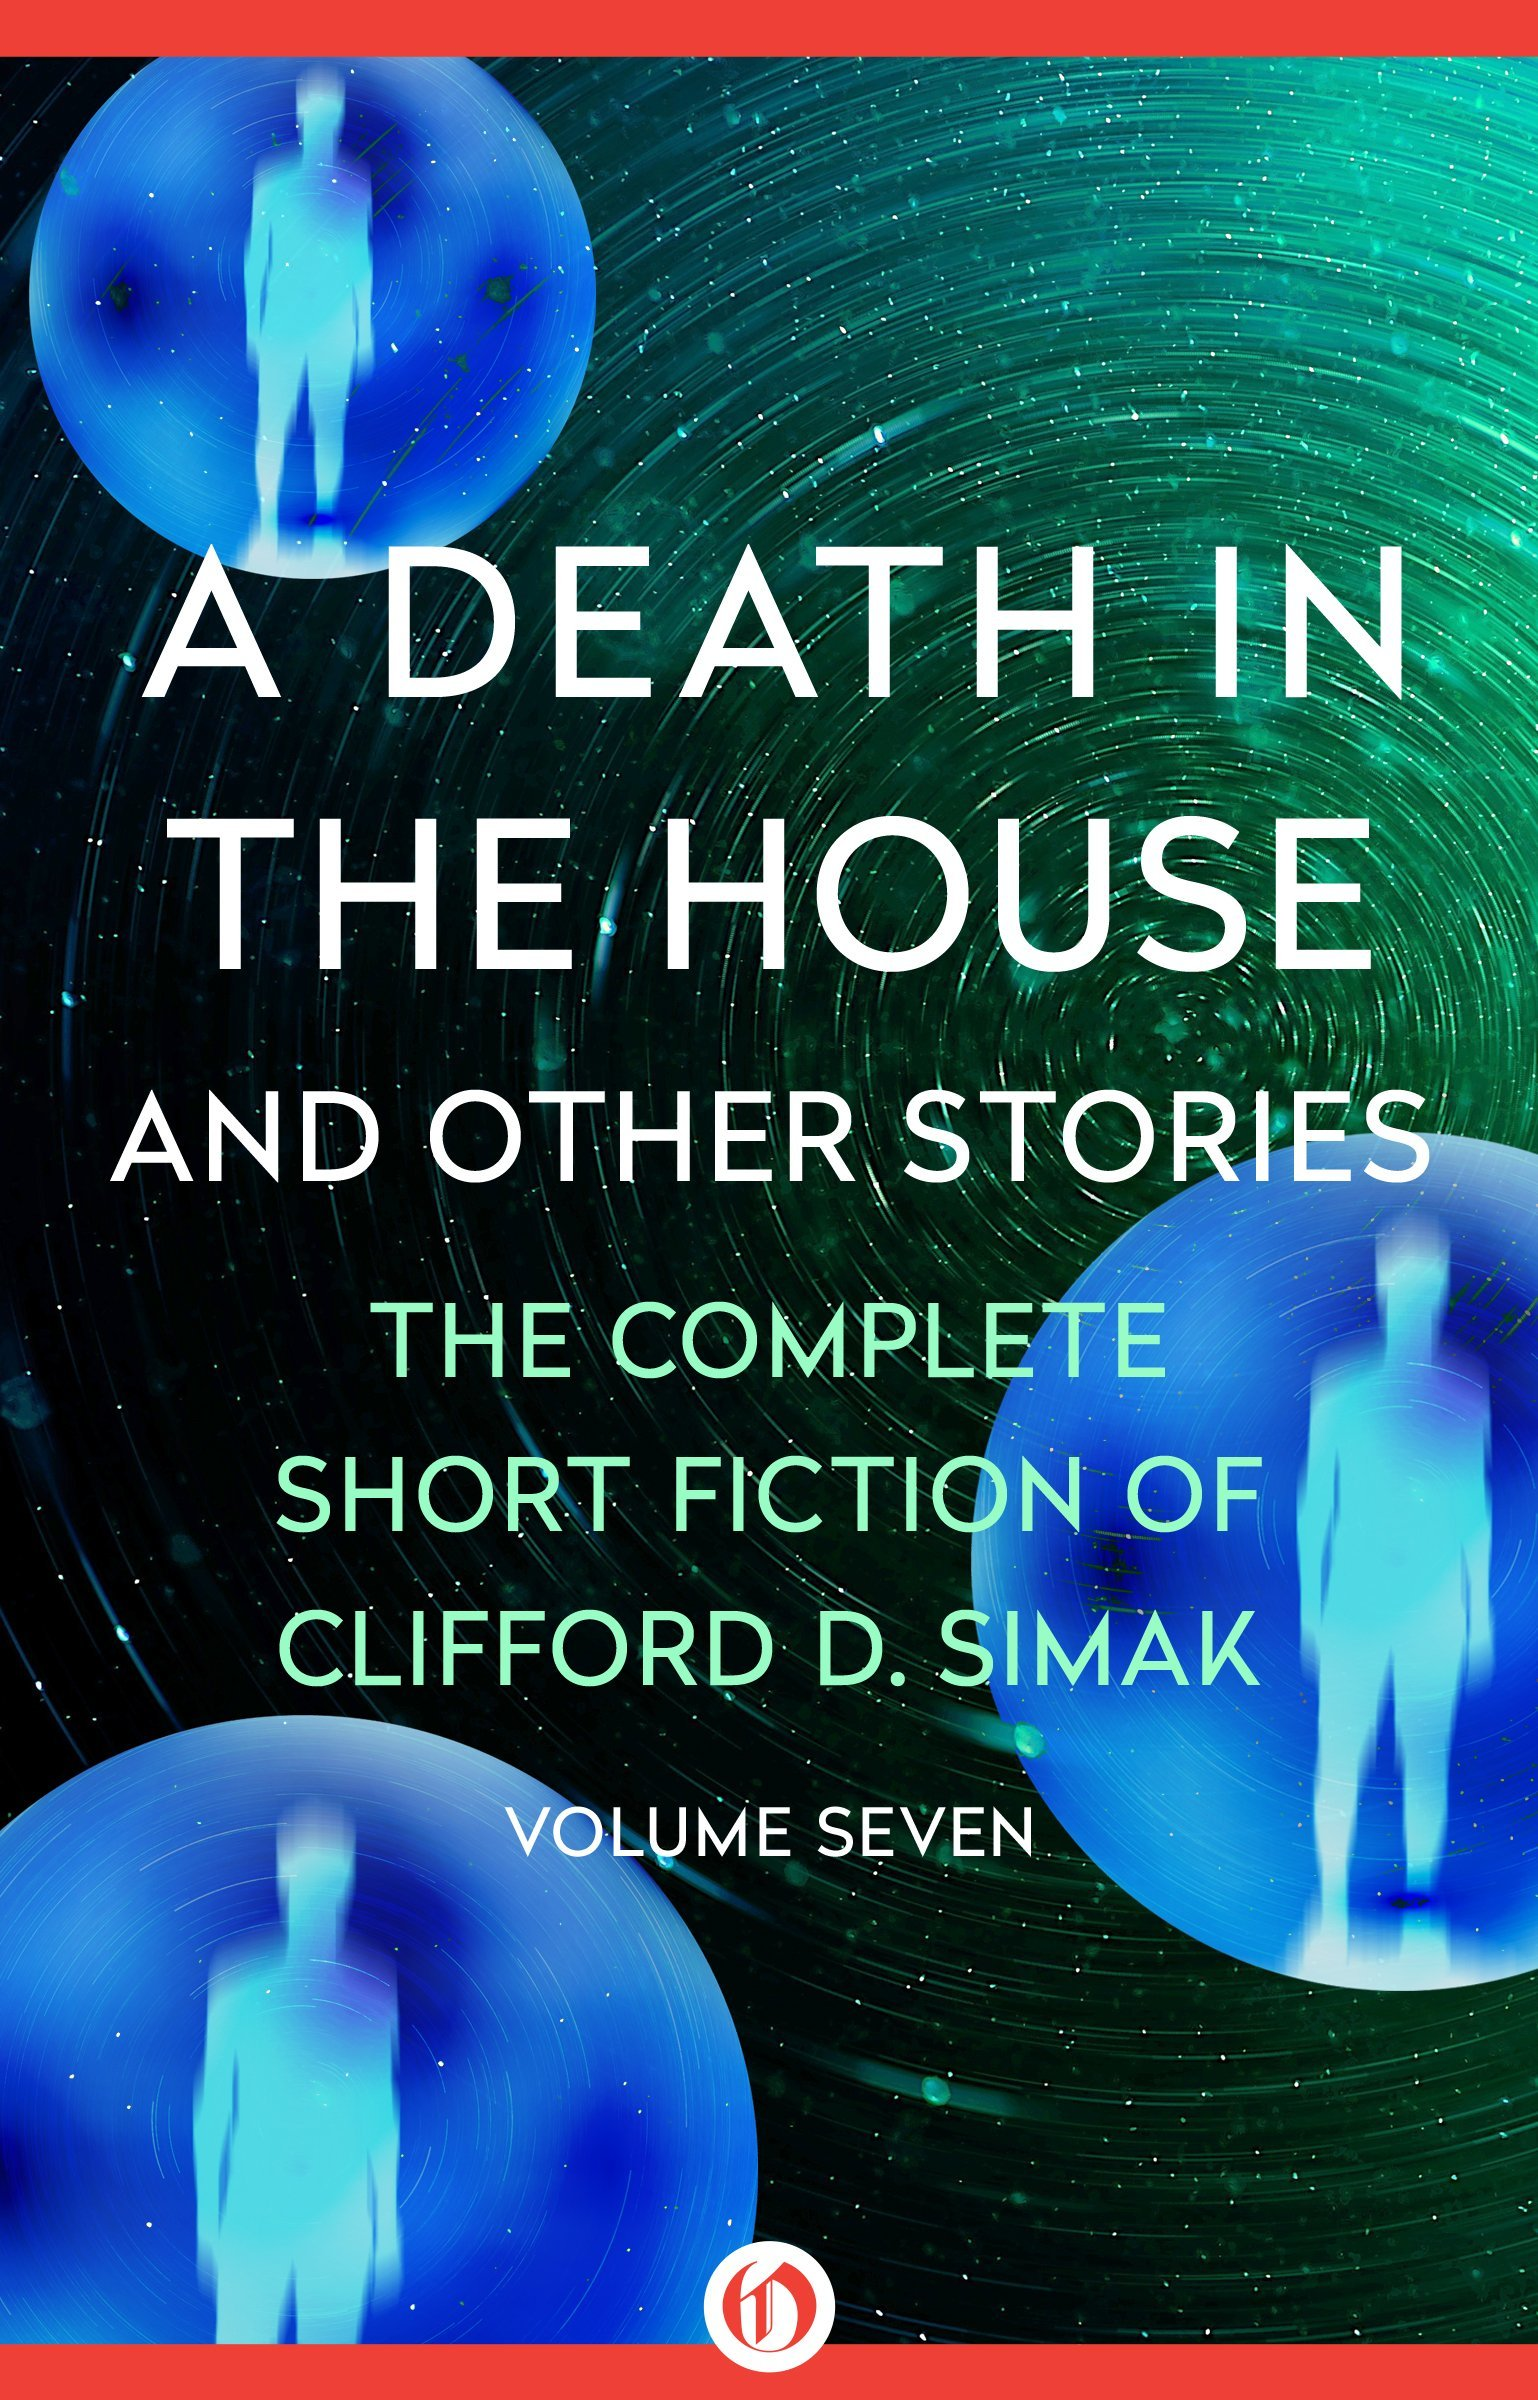 A Death in the House